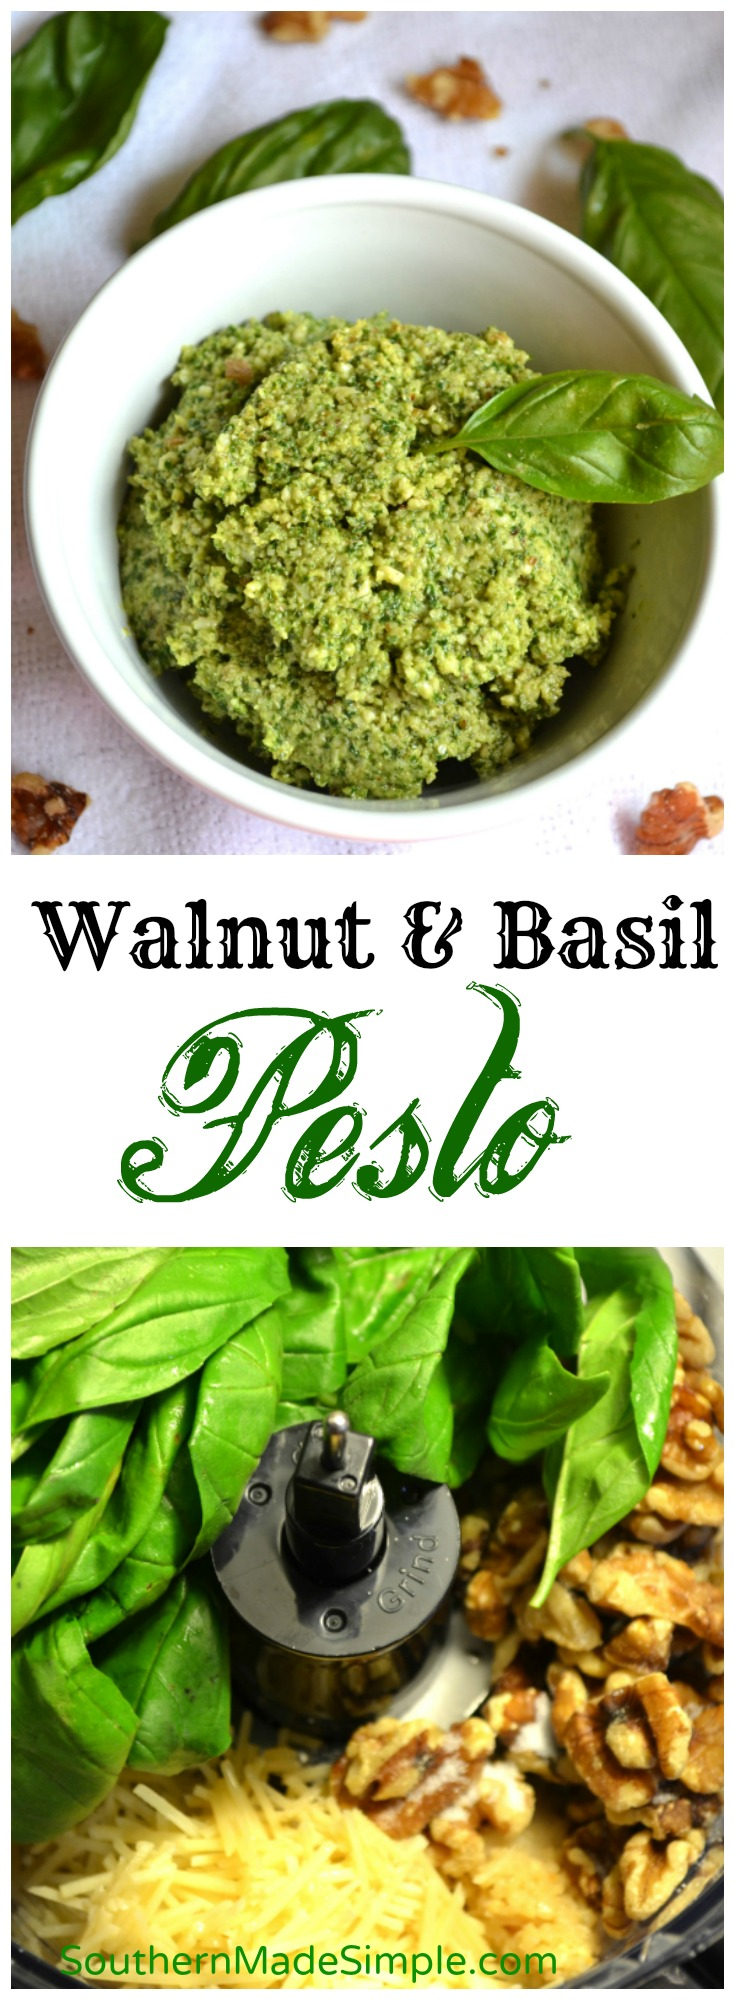 Walnut Basil Pesto - fresh pesto picked straight from the garden blended with olive oil, shredded Parmesan and finely chopped walnuts